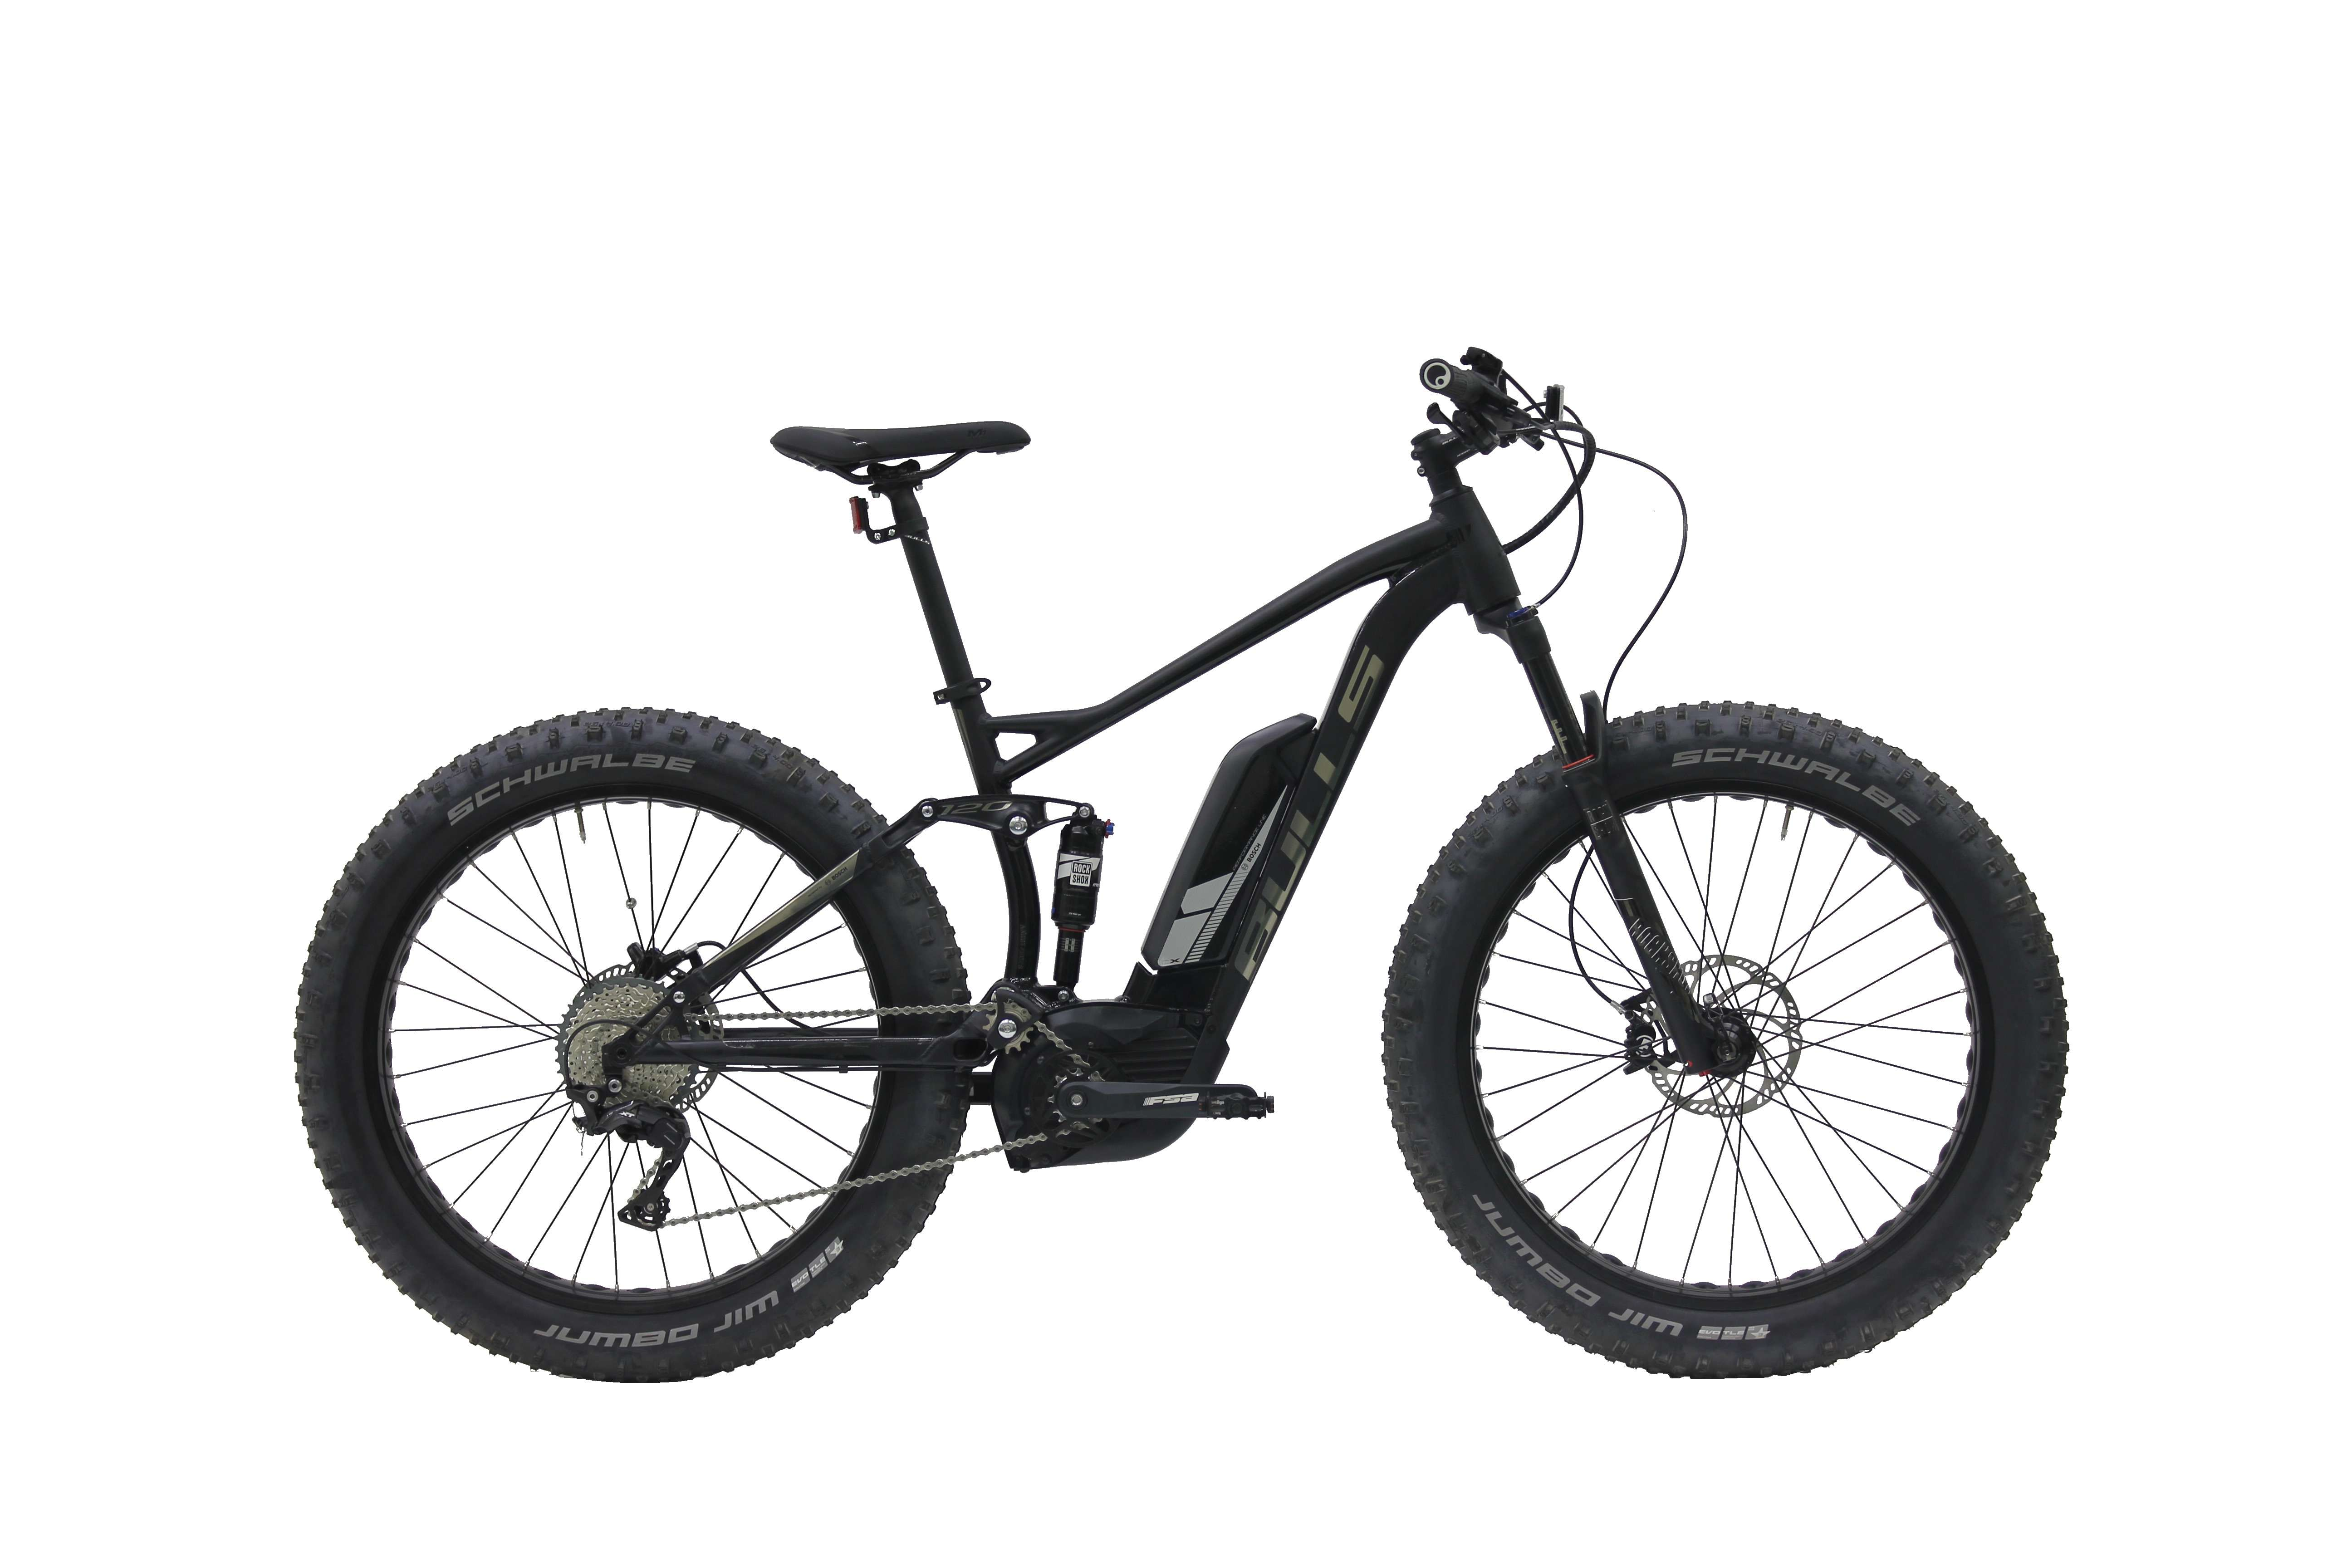 Bulls Monster FS, Electric Bike Dealers in Arizona, Bulls bikes, Bulls electric bikes, Bulls bicycles, Bulls